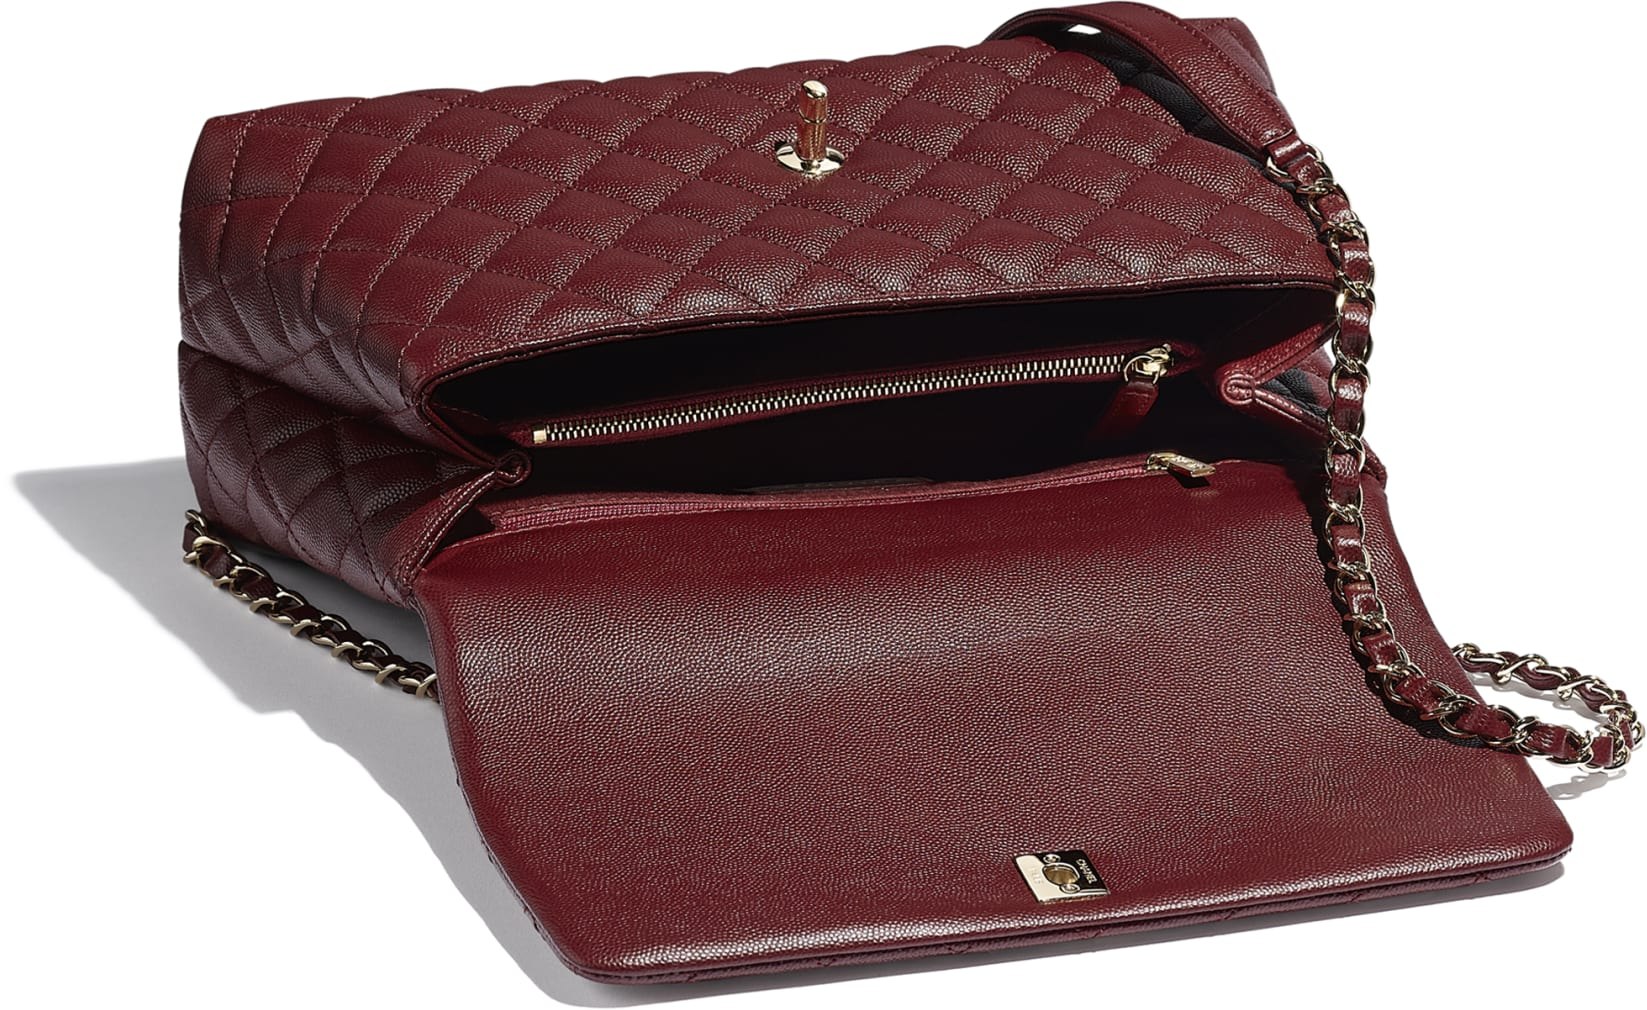 Large Flap Bag With Top Handle